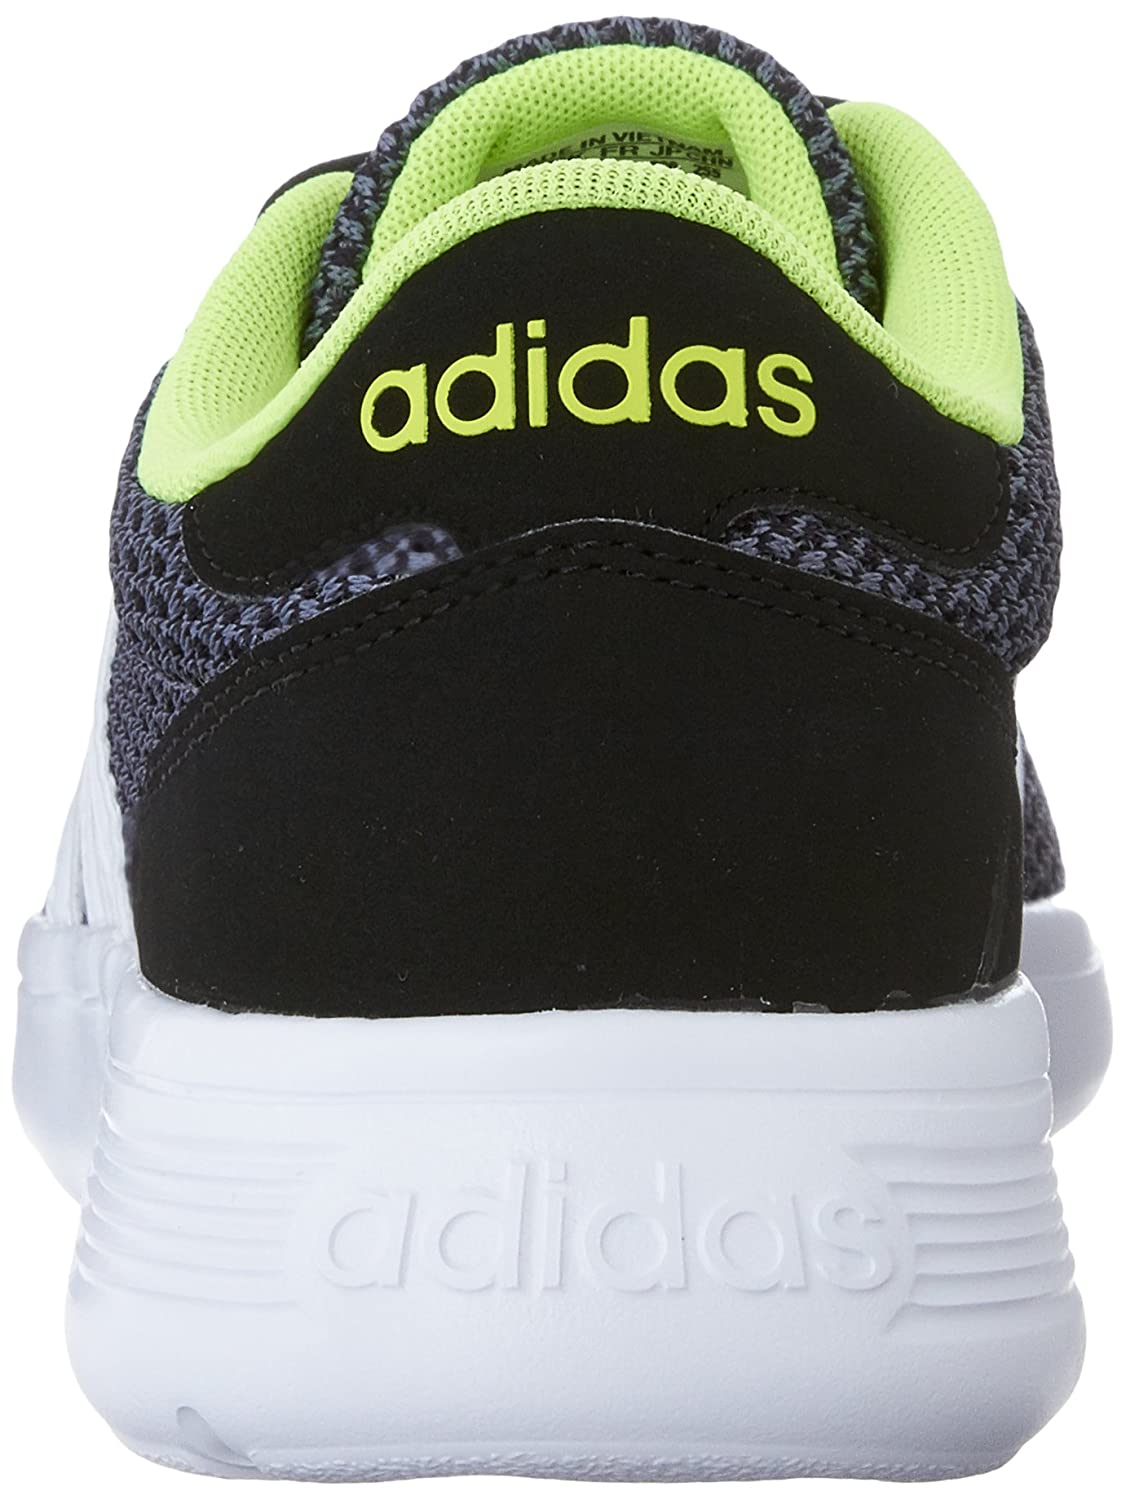 adidas neo men's lite racer lifestyle running shoe